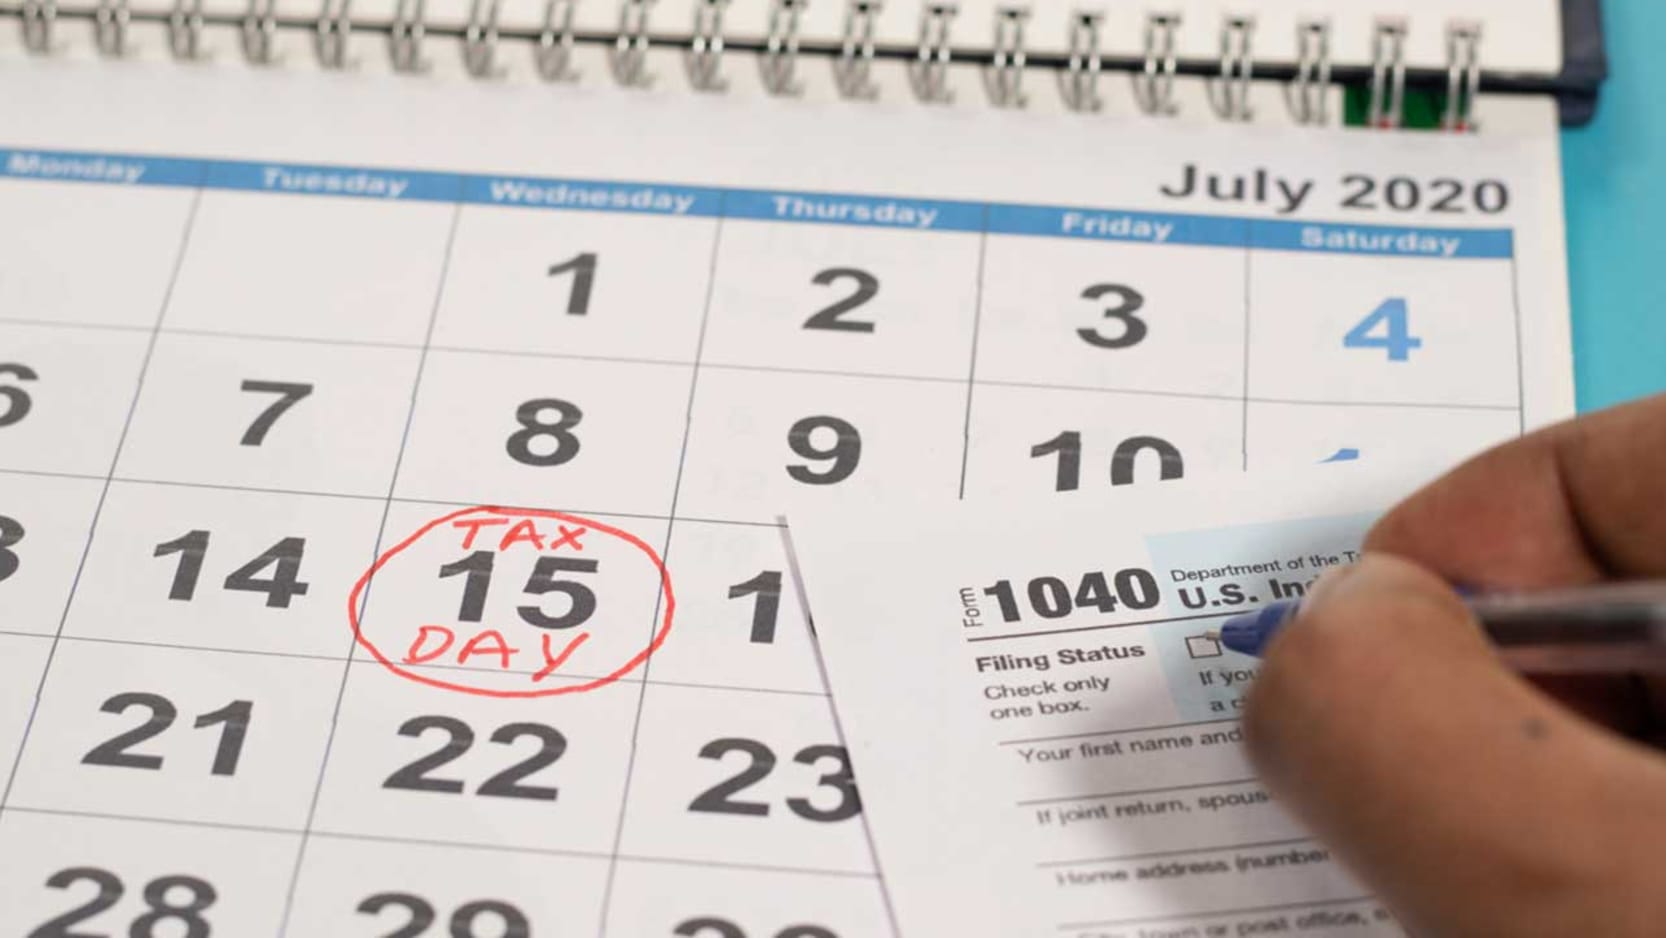 File a Superseded Return if the Filing Deadline Hasn't Passed